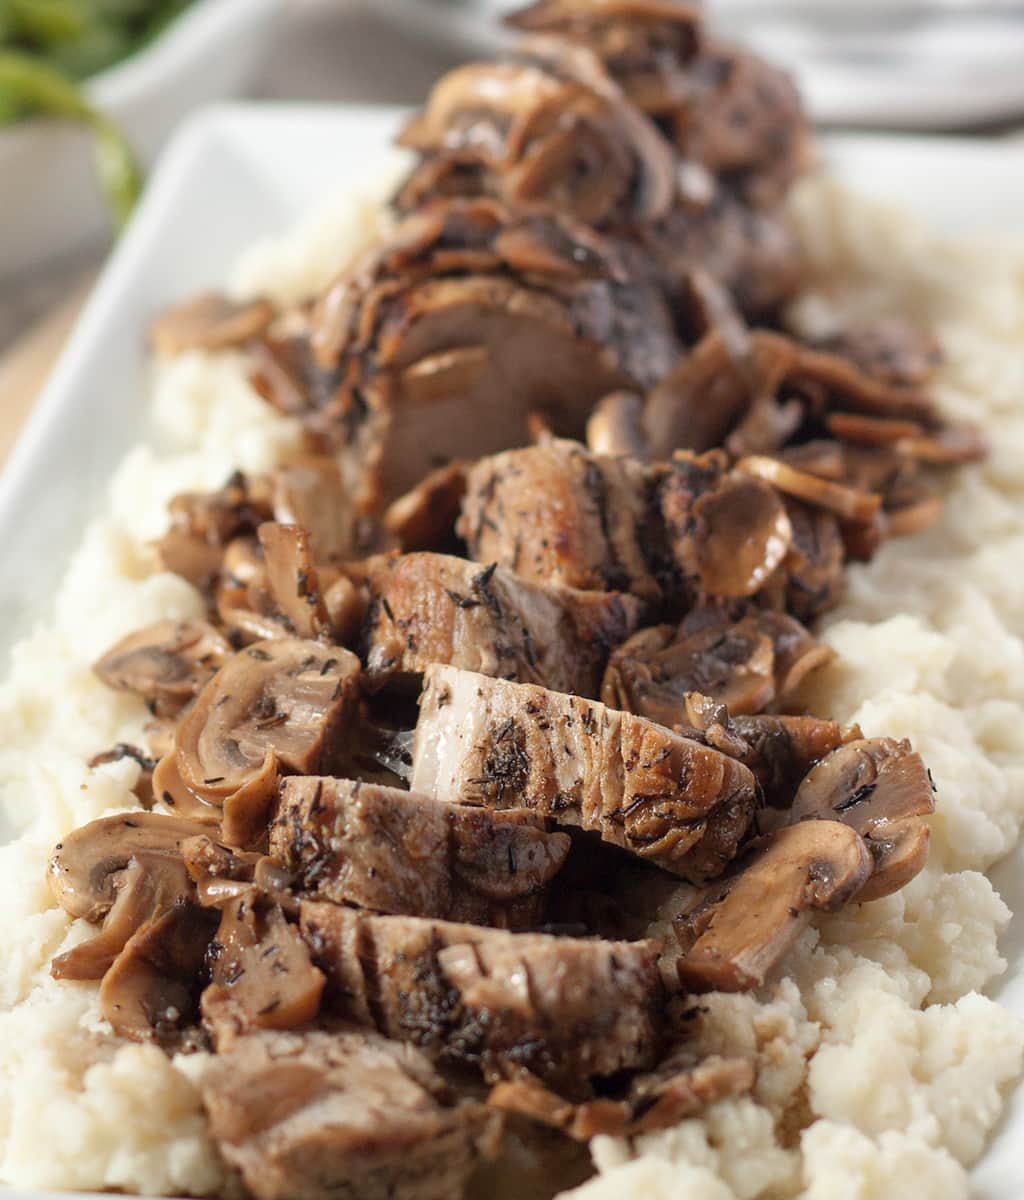 Oven Roasted Pork Tenderloin with Mushrooms